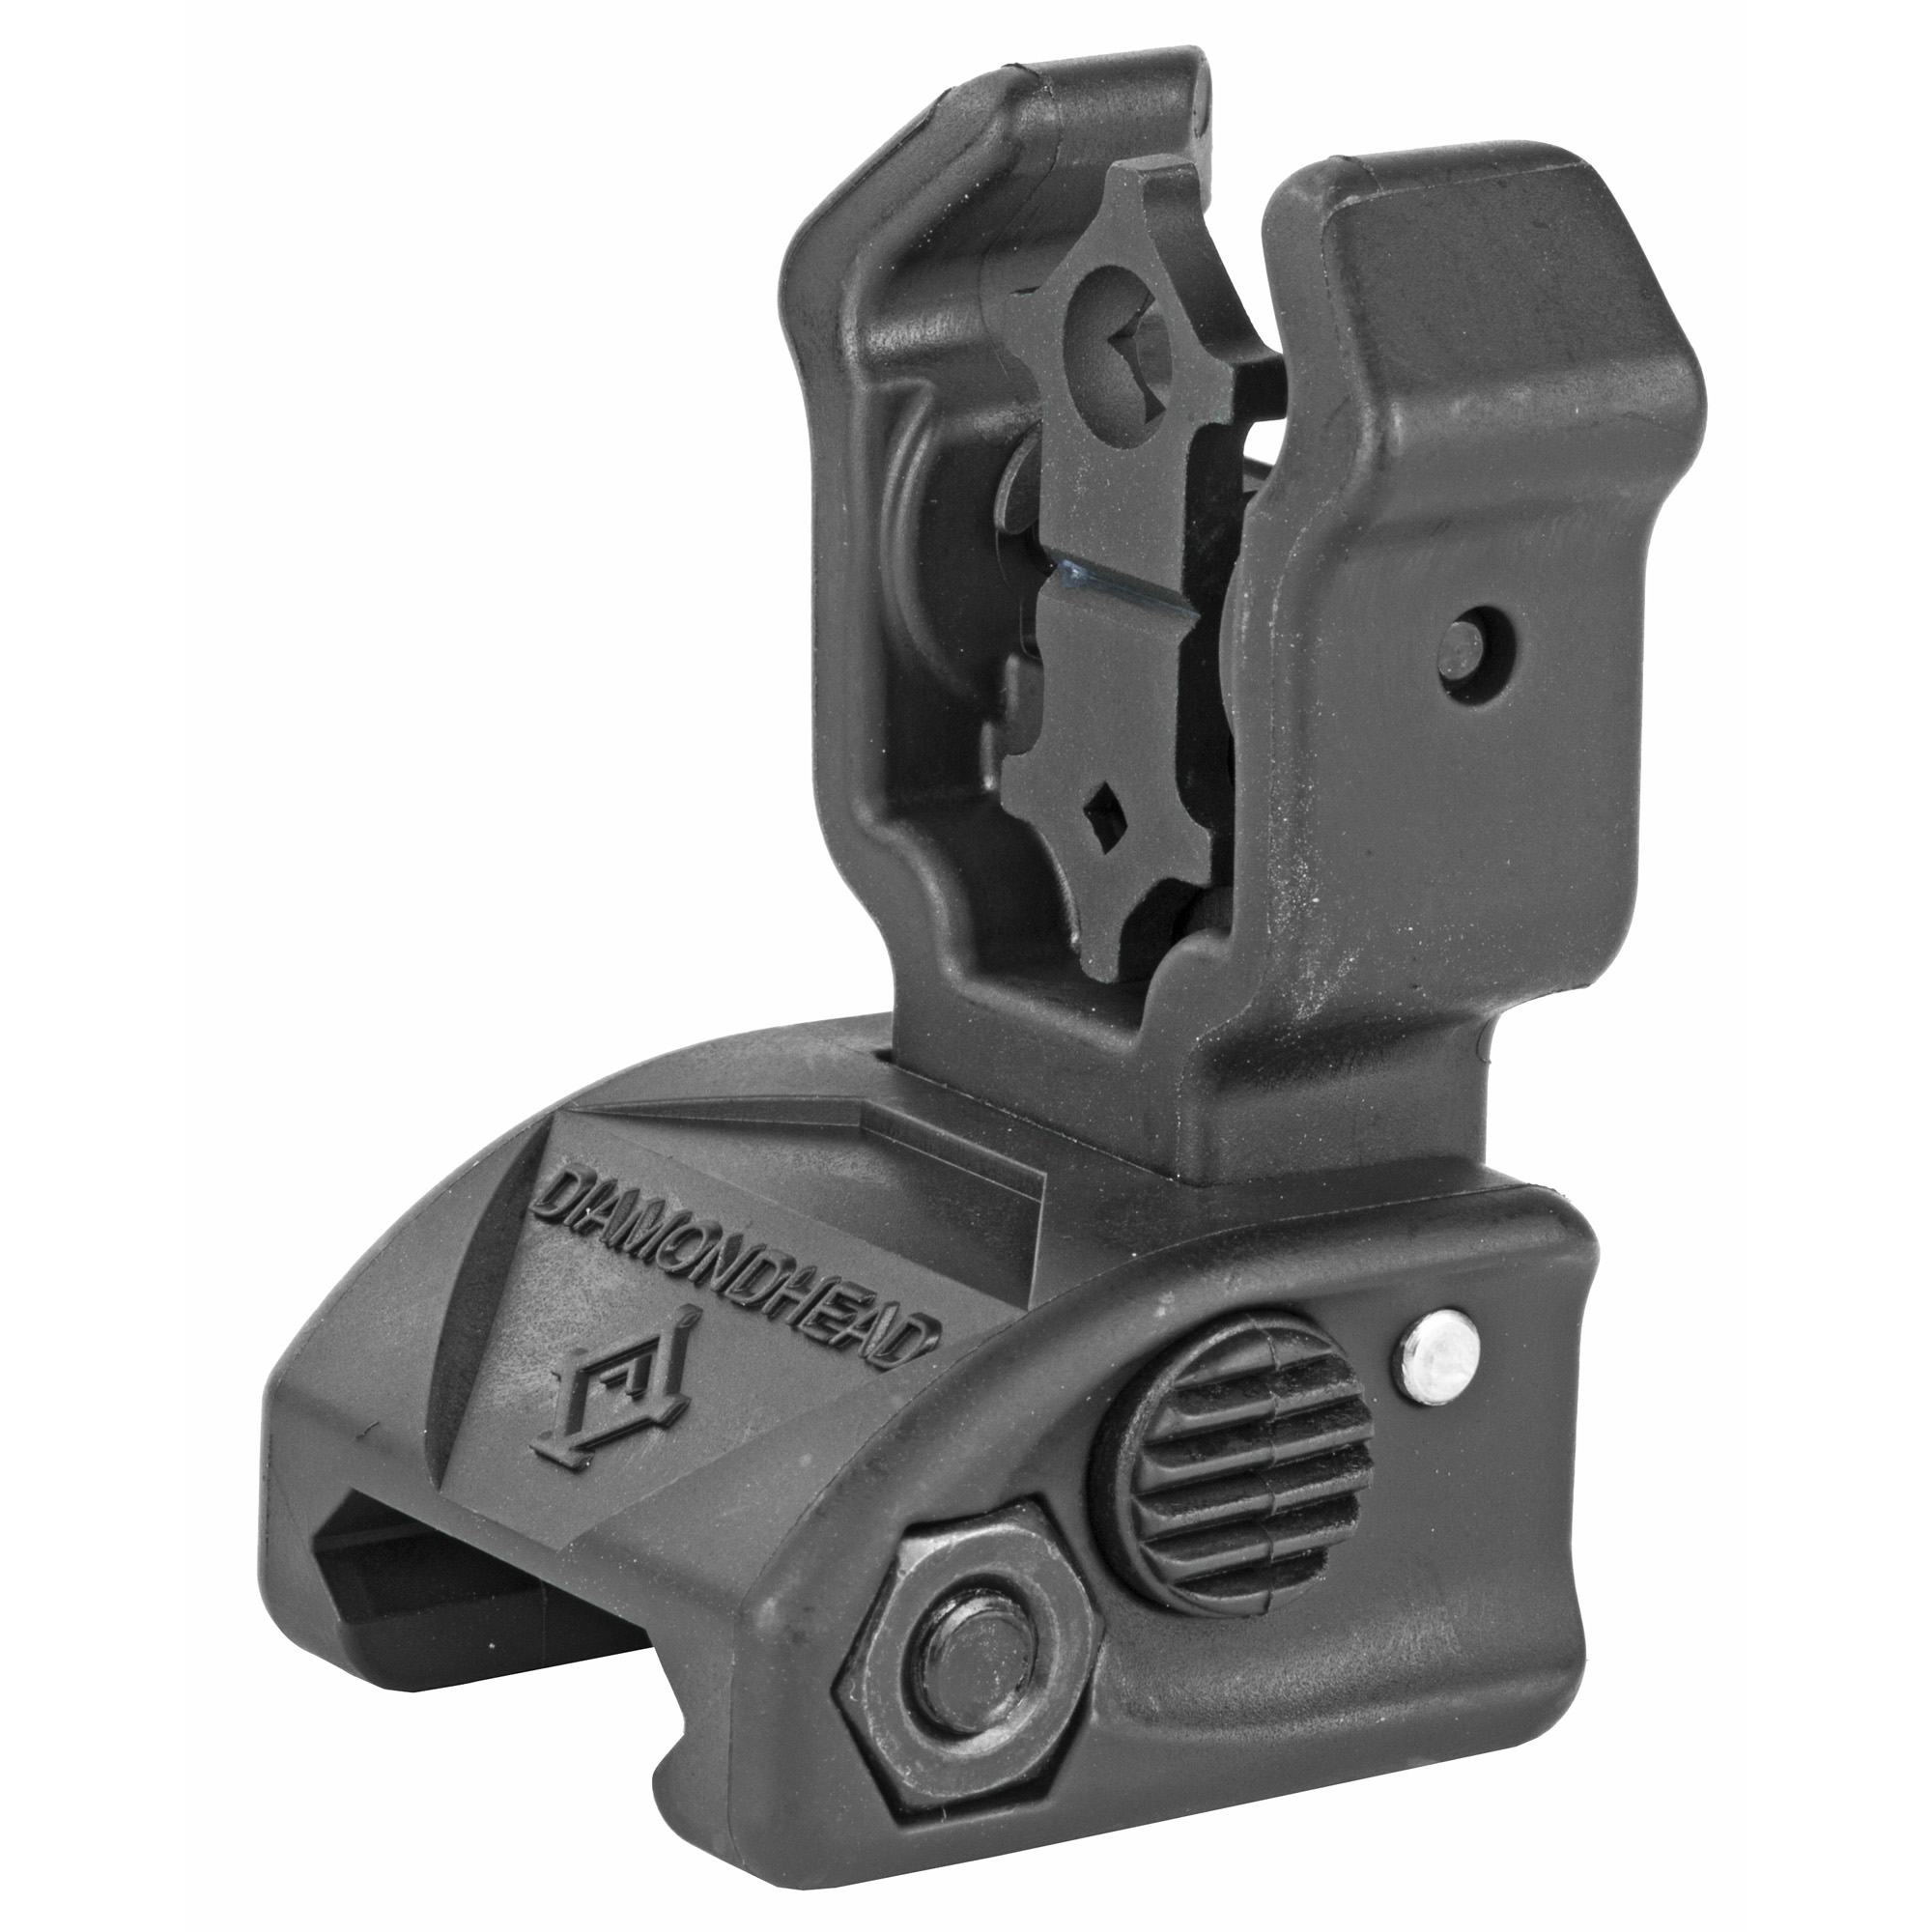 """Diamondhead's Polymer Diamond Rear Sight is designed for all AR15s and Modern Sporting Rifles. It is suitable for firearms fitted with a factory hand-guard and a fixed front sight"""" or can be paired with any Picatinny rail mounted Diamondhead Front Sight e.g. Diamond Front Polymer Sight"""" Diamond Front Combat Sight"""" Auto-Ranger Front Combat Sight"""" etc."""